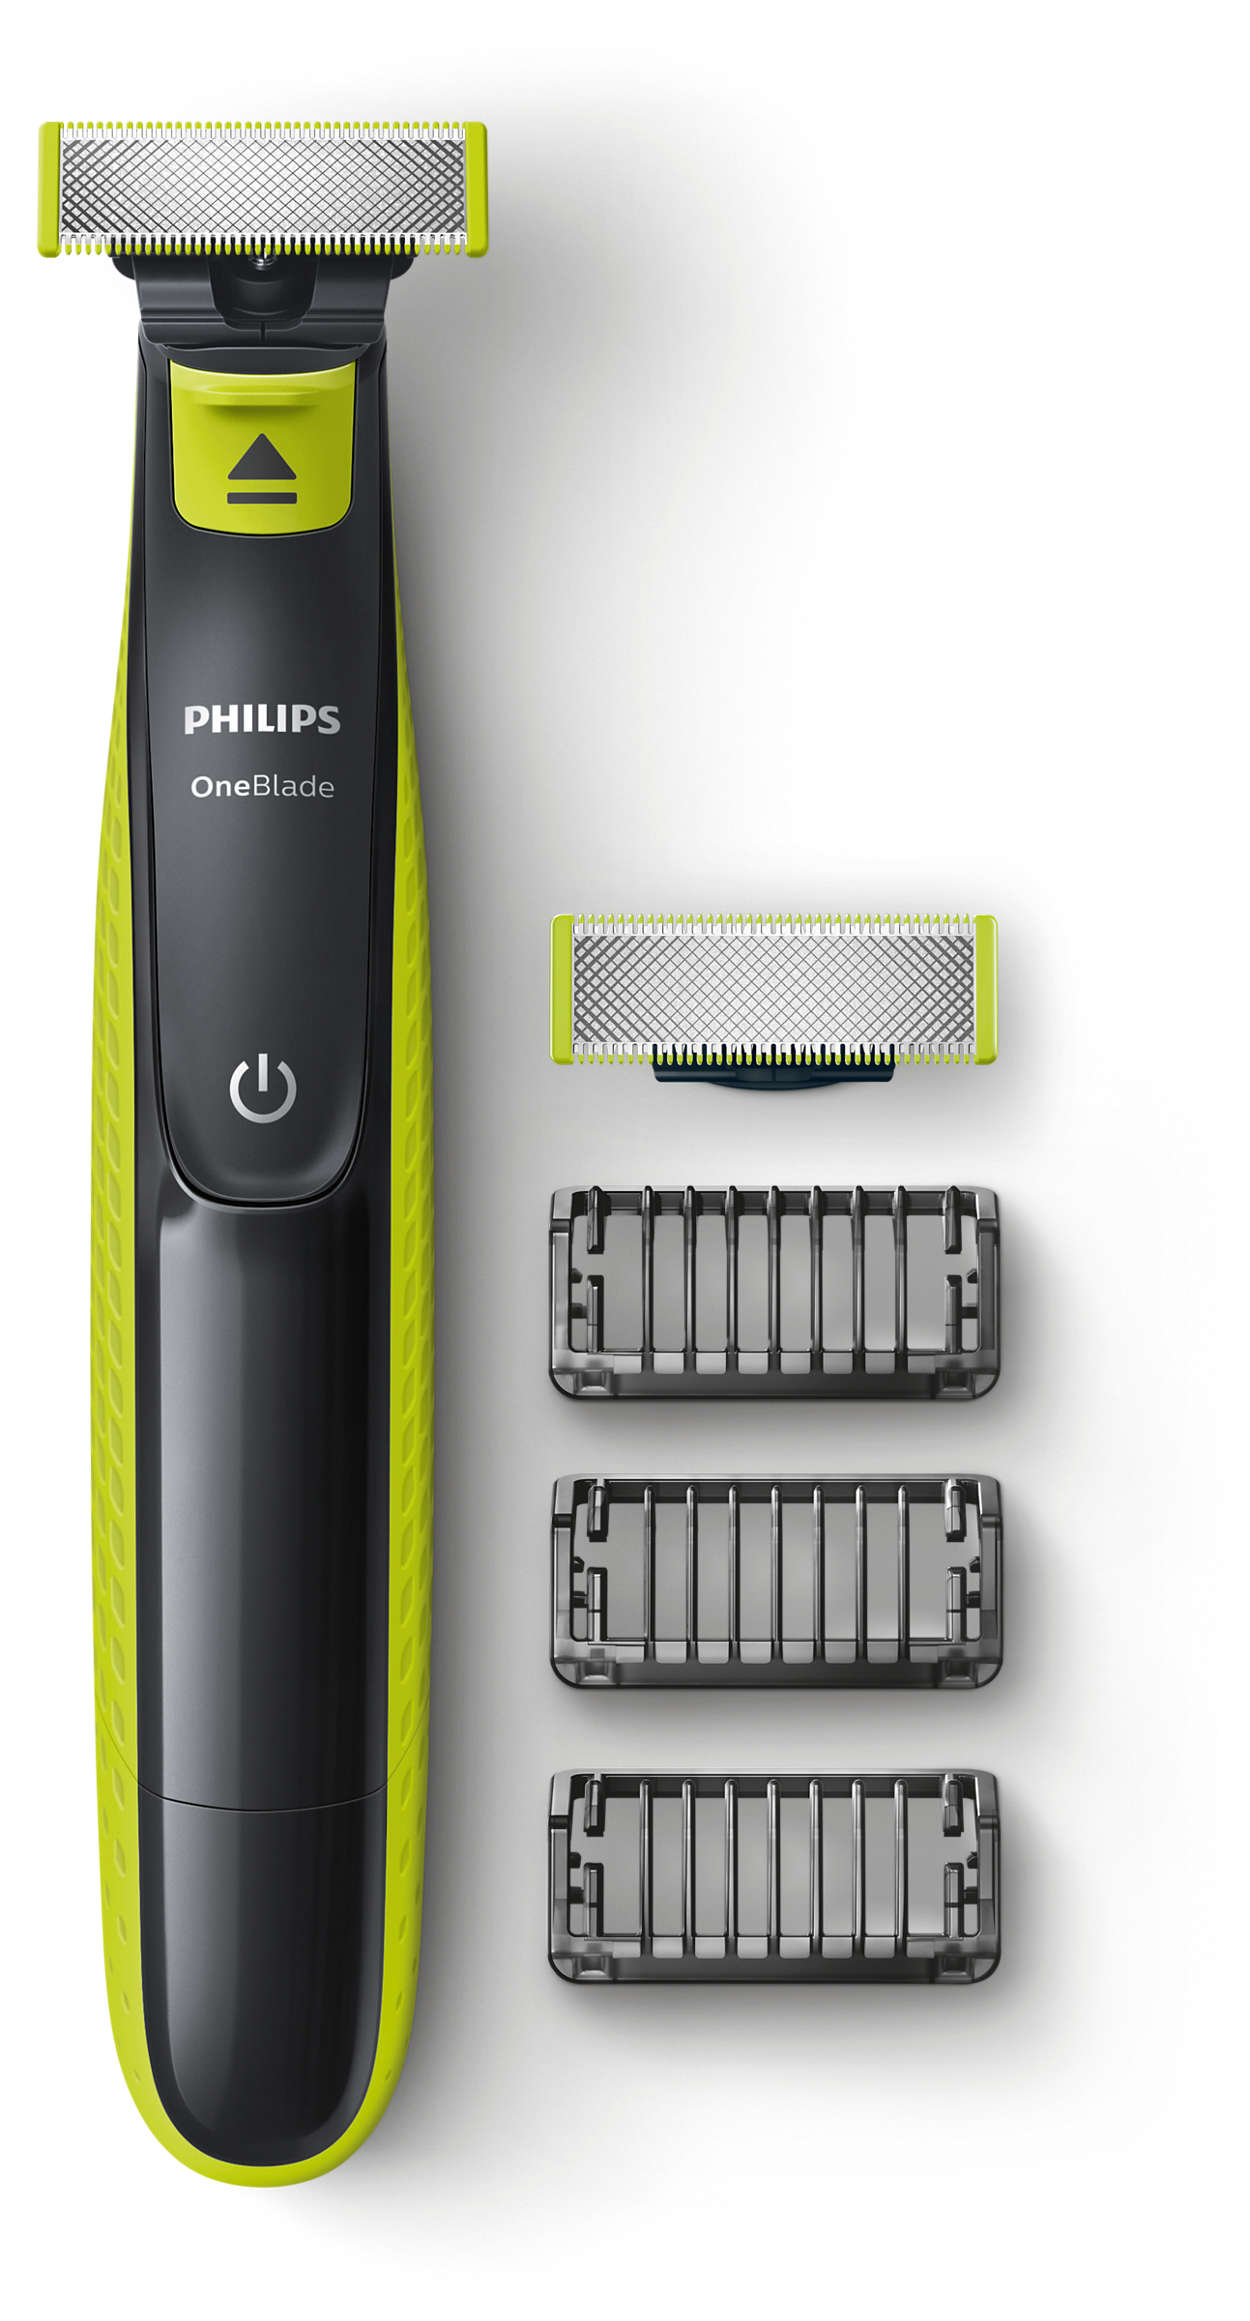 OneBlade to trim, edge and shave any length of hair